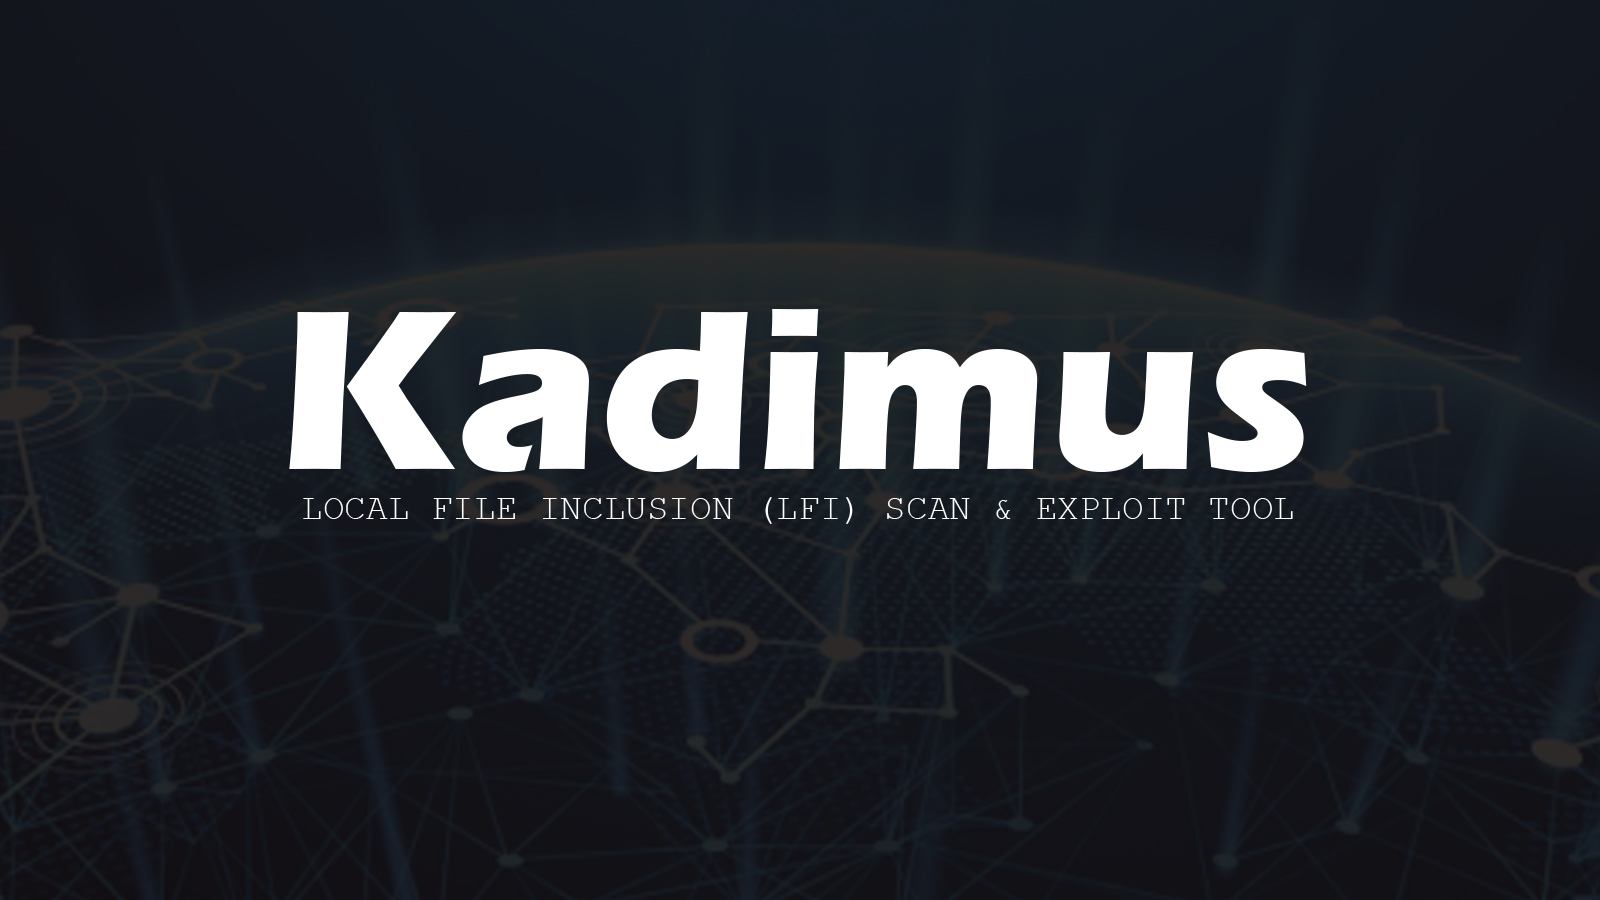 Kadimus - Local File Inclusion (LFI) Scan & Exploit Tool